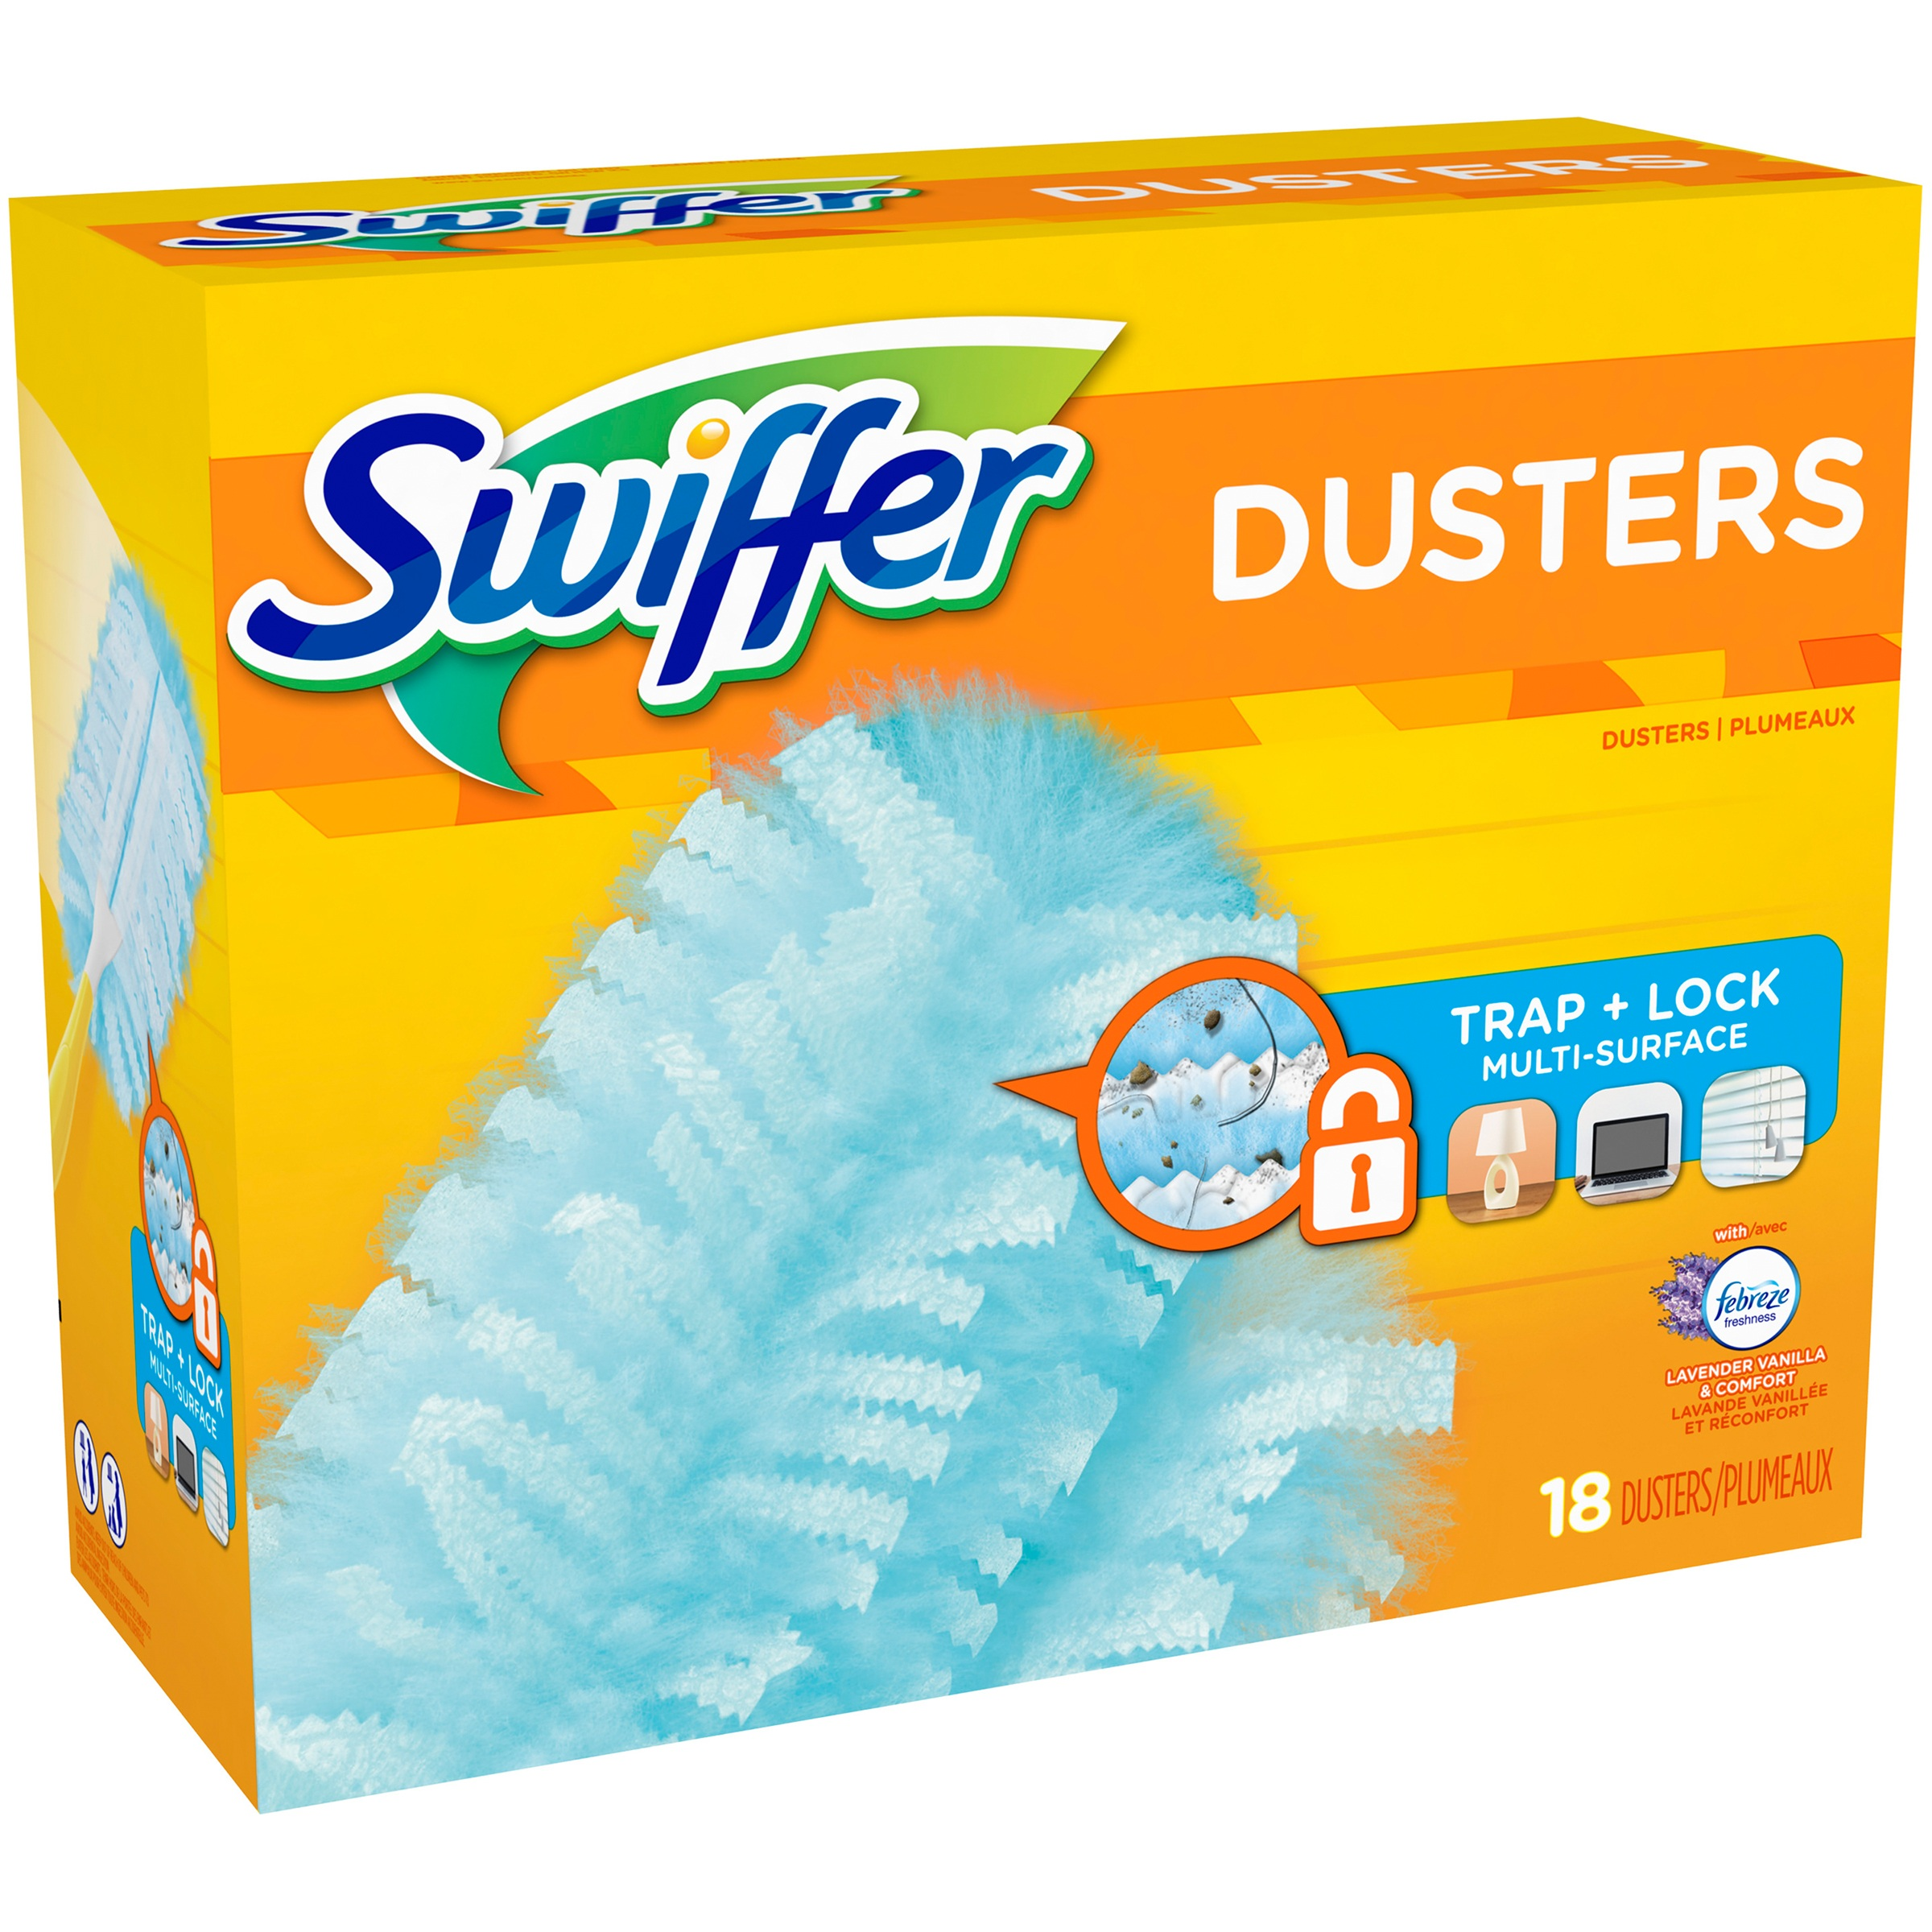 Swiffer with Febreze Lavender Vanilla & Comfort Dusters 18 ct Box